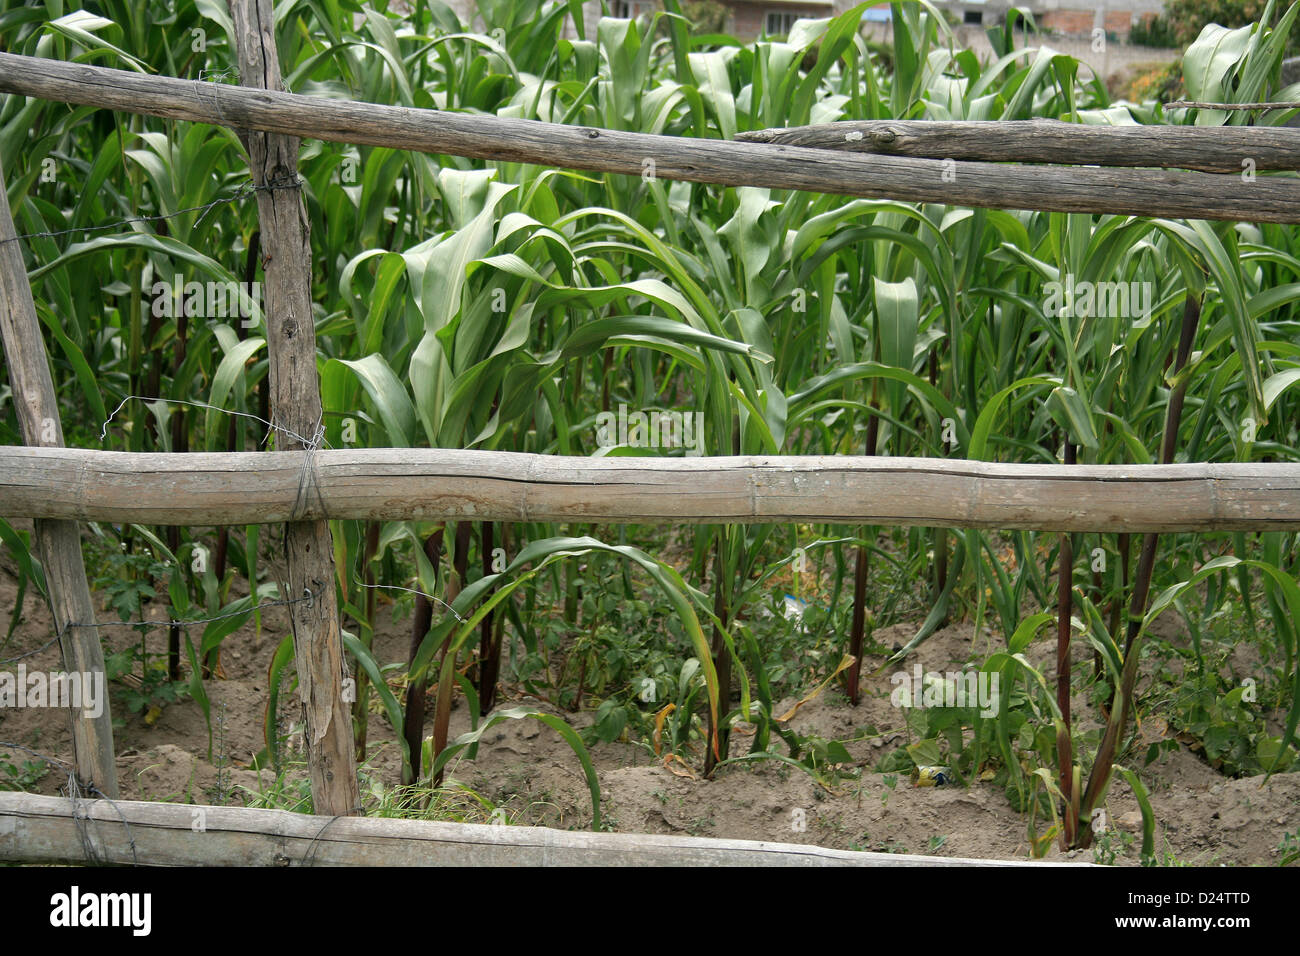 A wood rail fence beside a field of corn on a rural property in Cotacachi, Ecuador - Stock Image